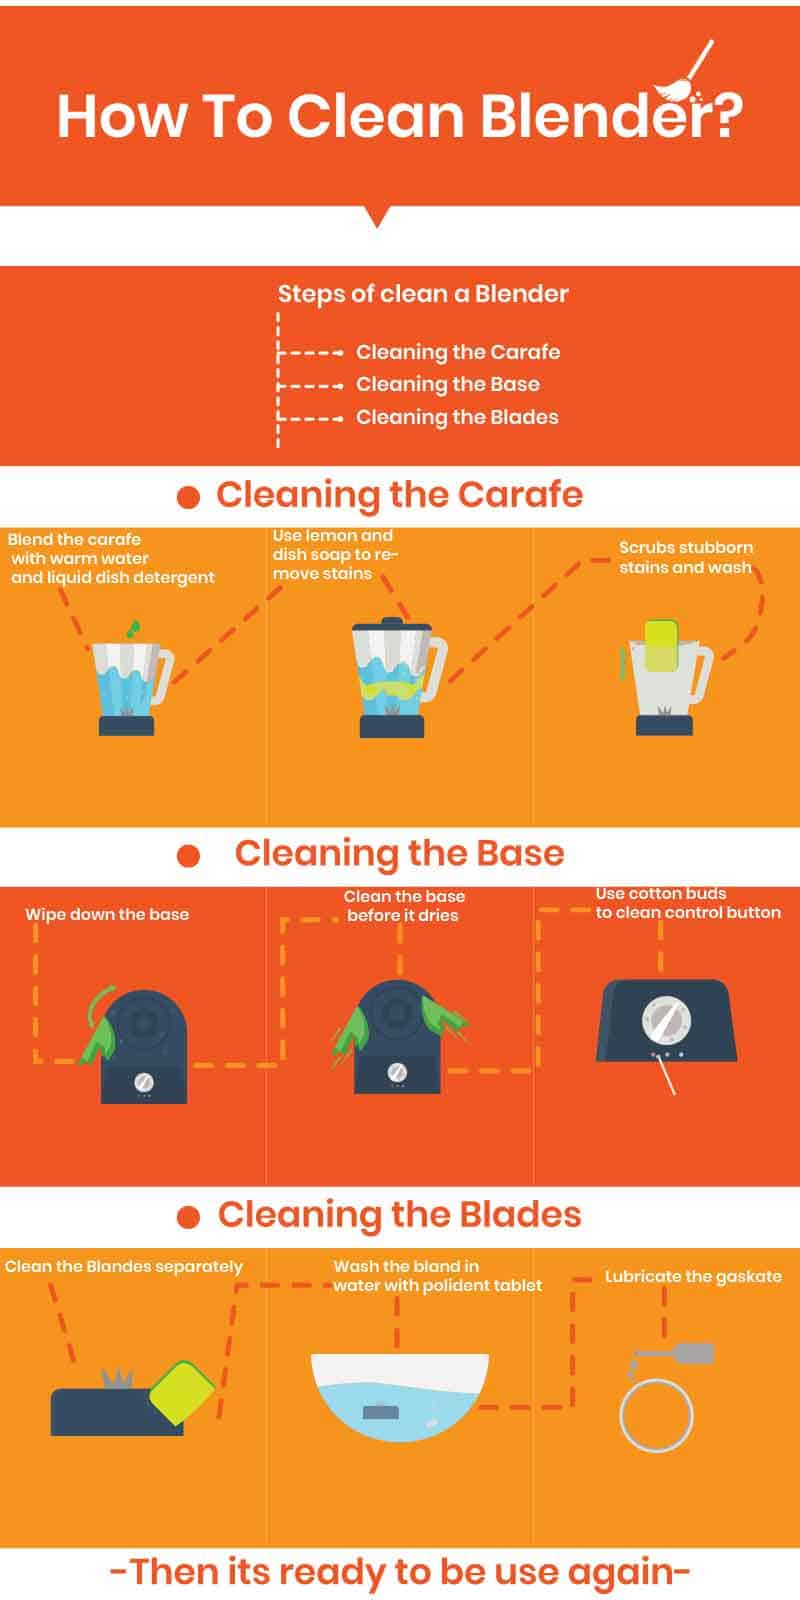 how to clean blender info graphic?